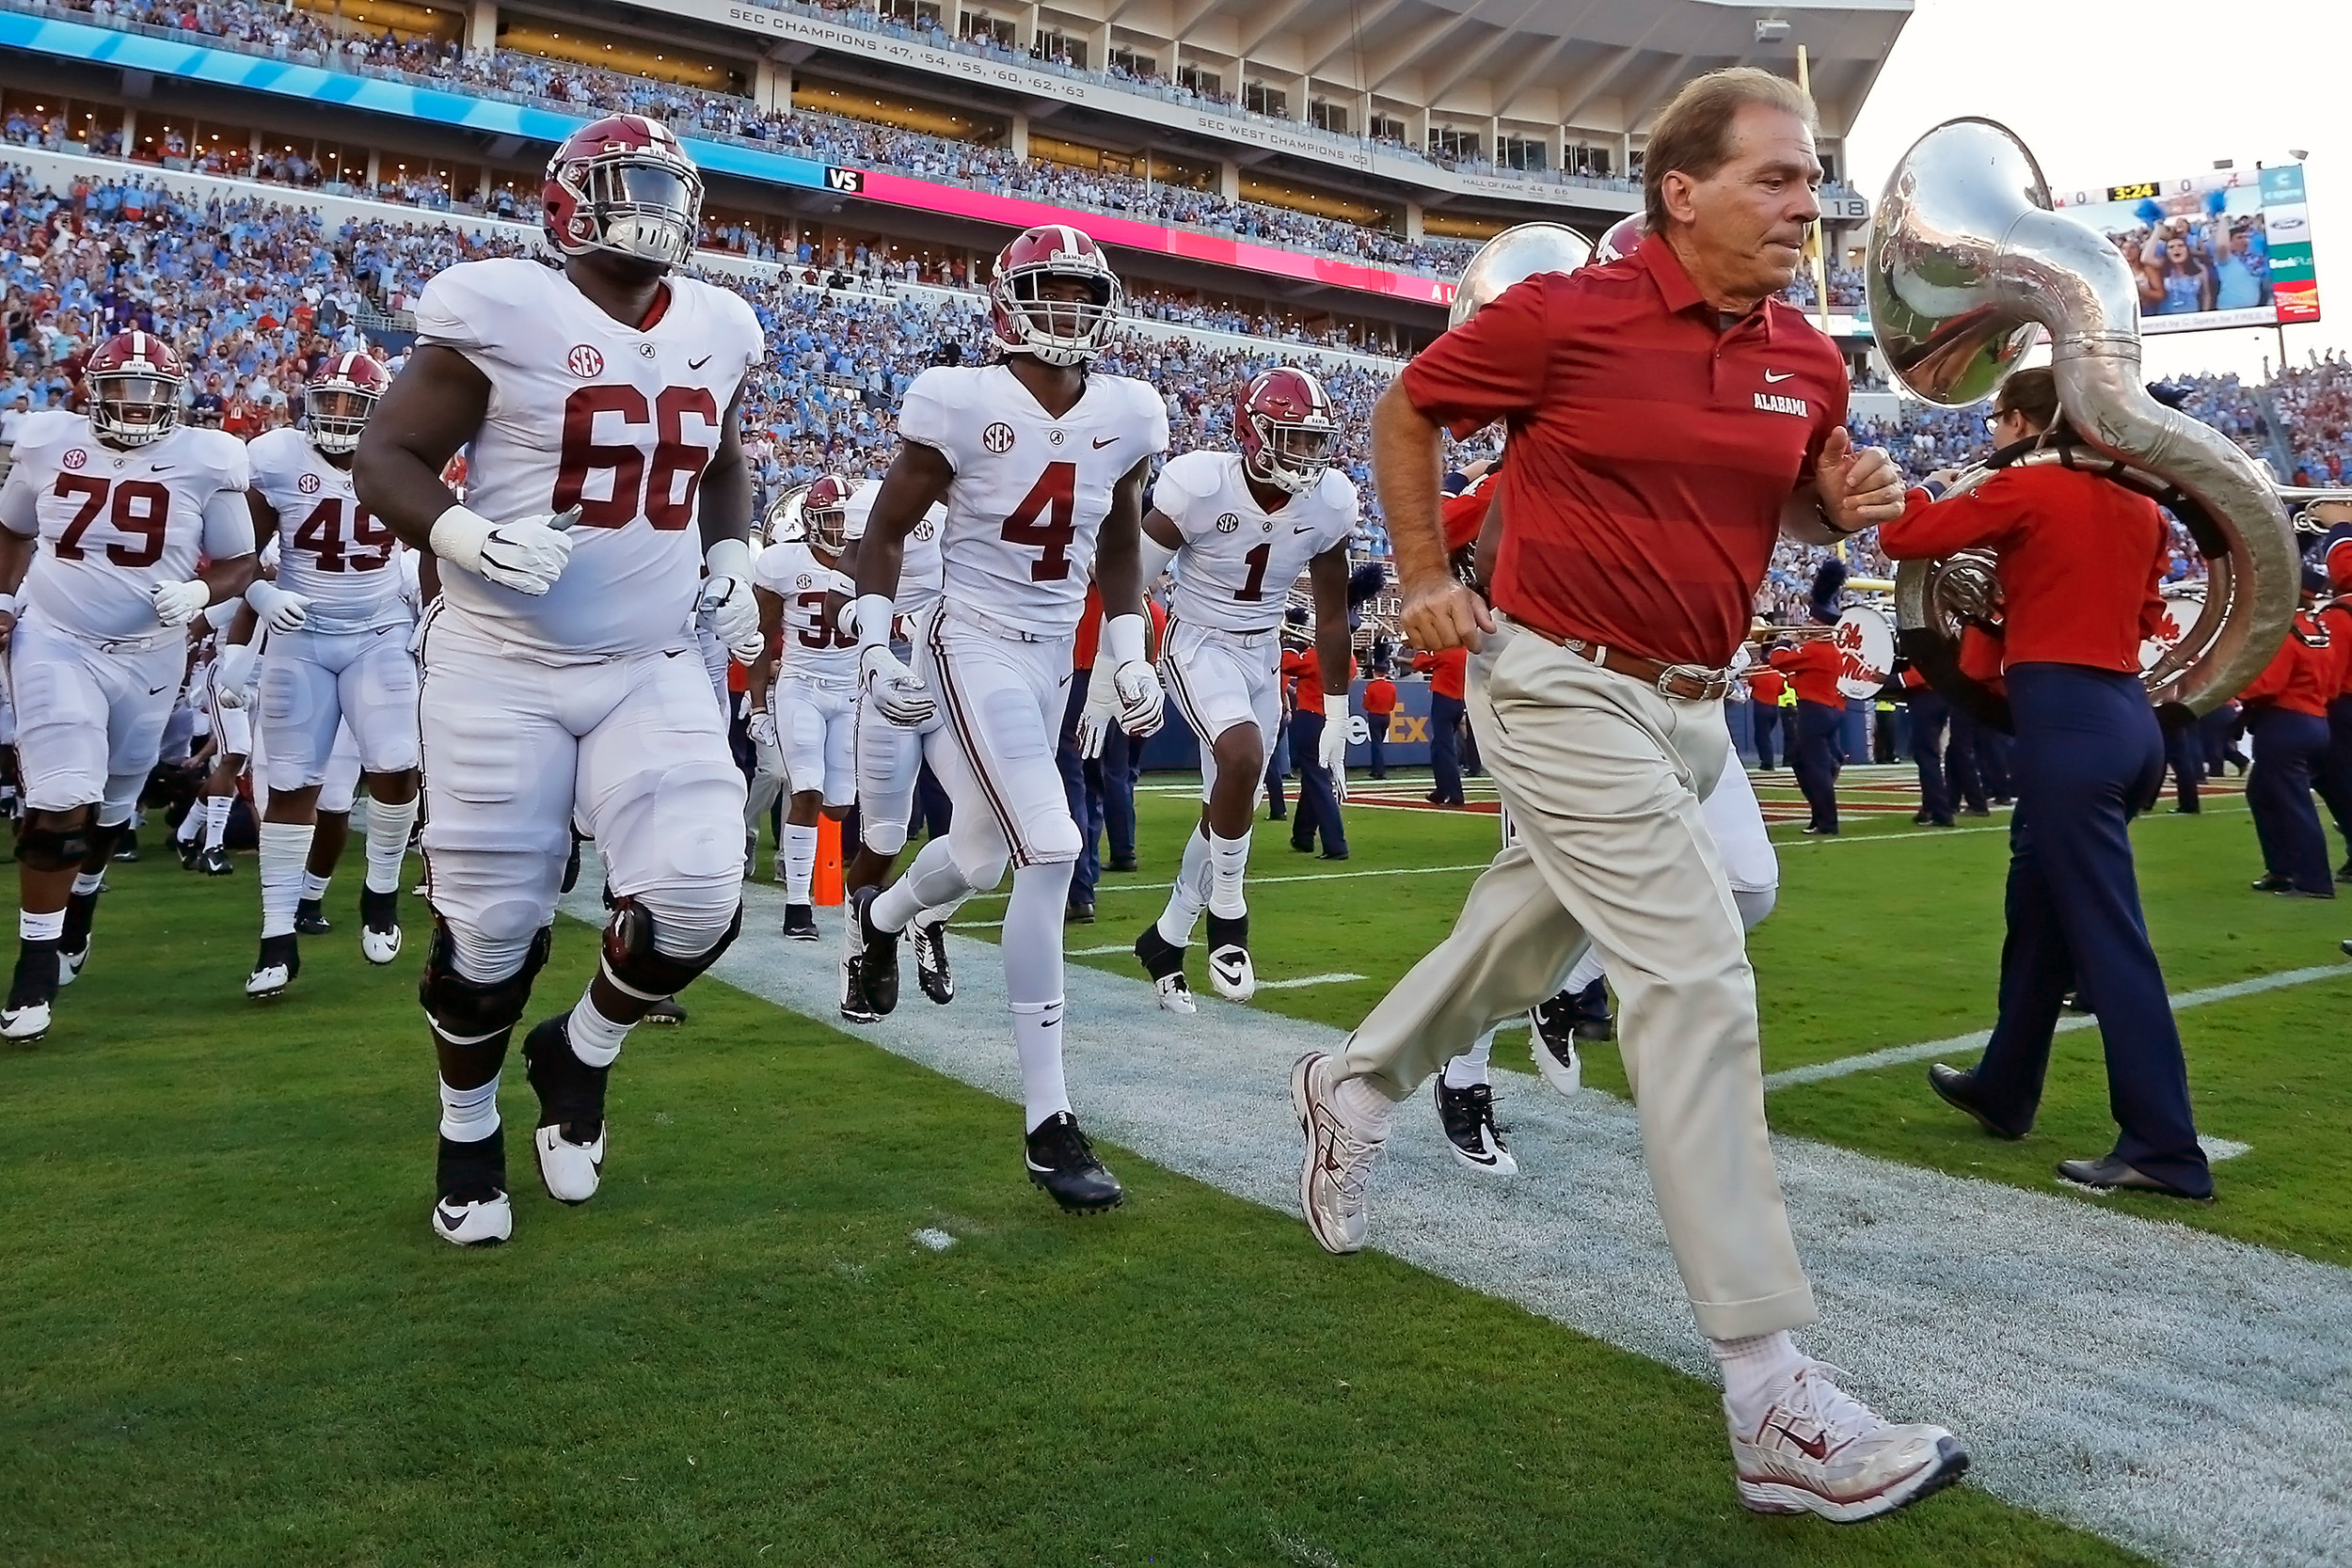 Alabama Crimson Tide head coach Nick Saban leads his team out for the game between the University of Alabama and Ole Miss at Vaught-Hemingway Stadium. Jason Clark / Daily Mountain Eagle